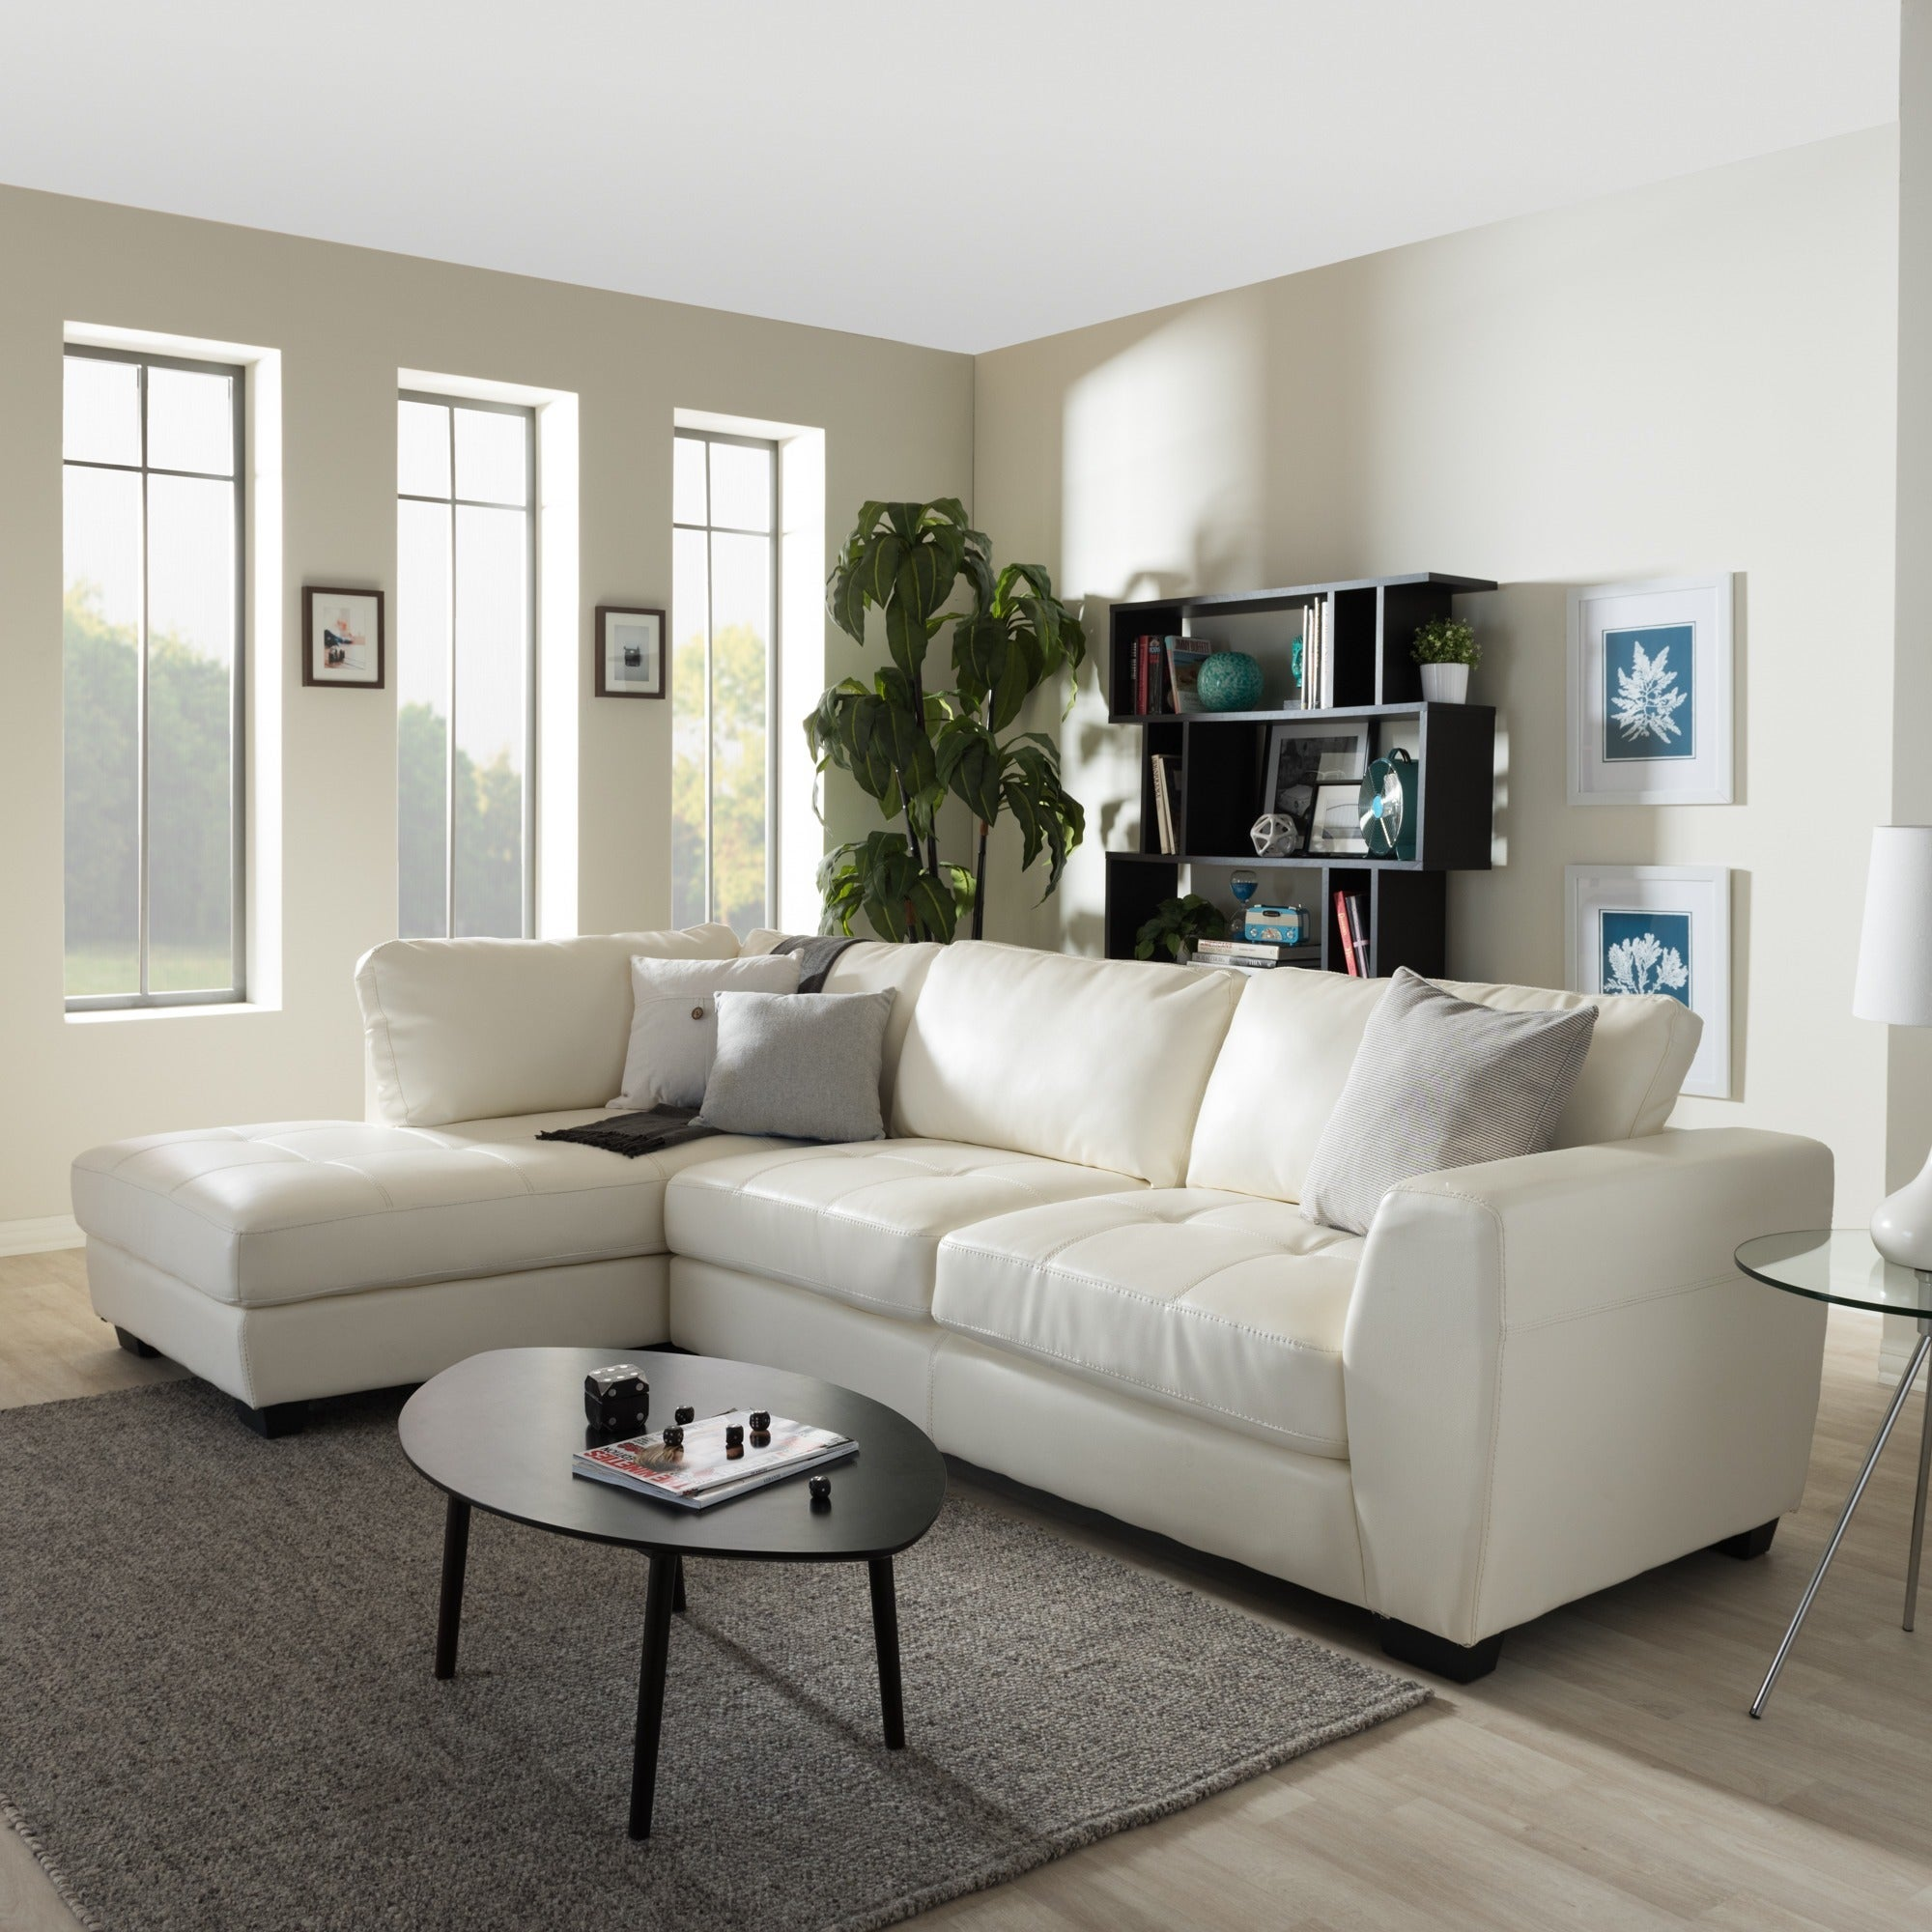 orland white leather modern sectional sofa set with left facing chaise free shipping today  overstockcom  . orland white leather modern sectional sofa set with left facing